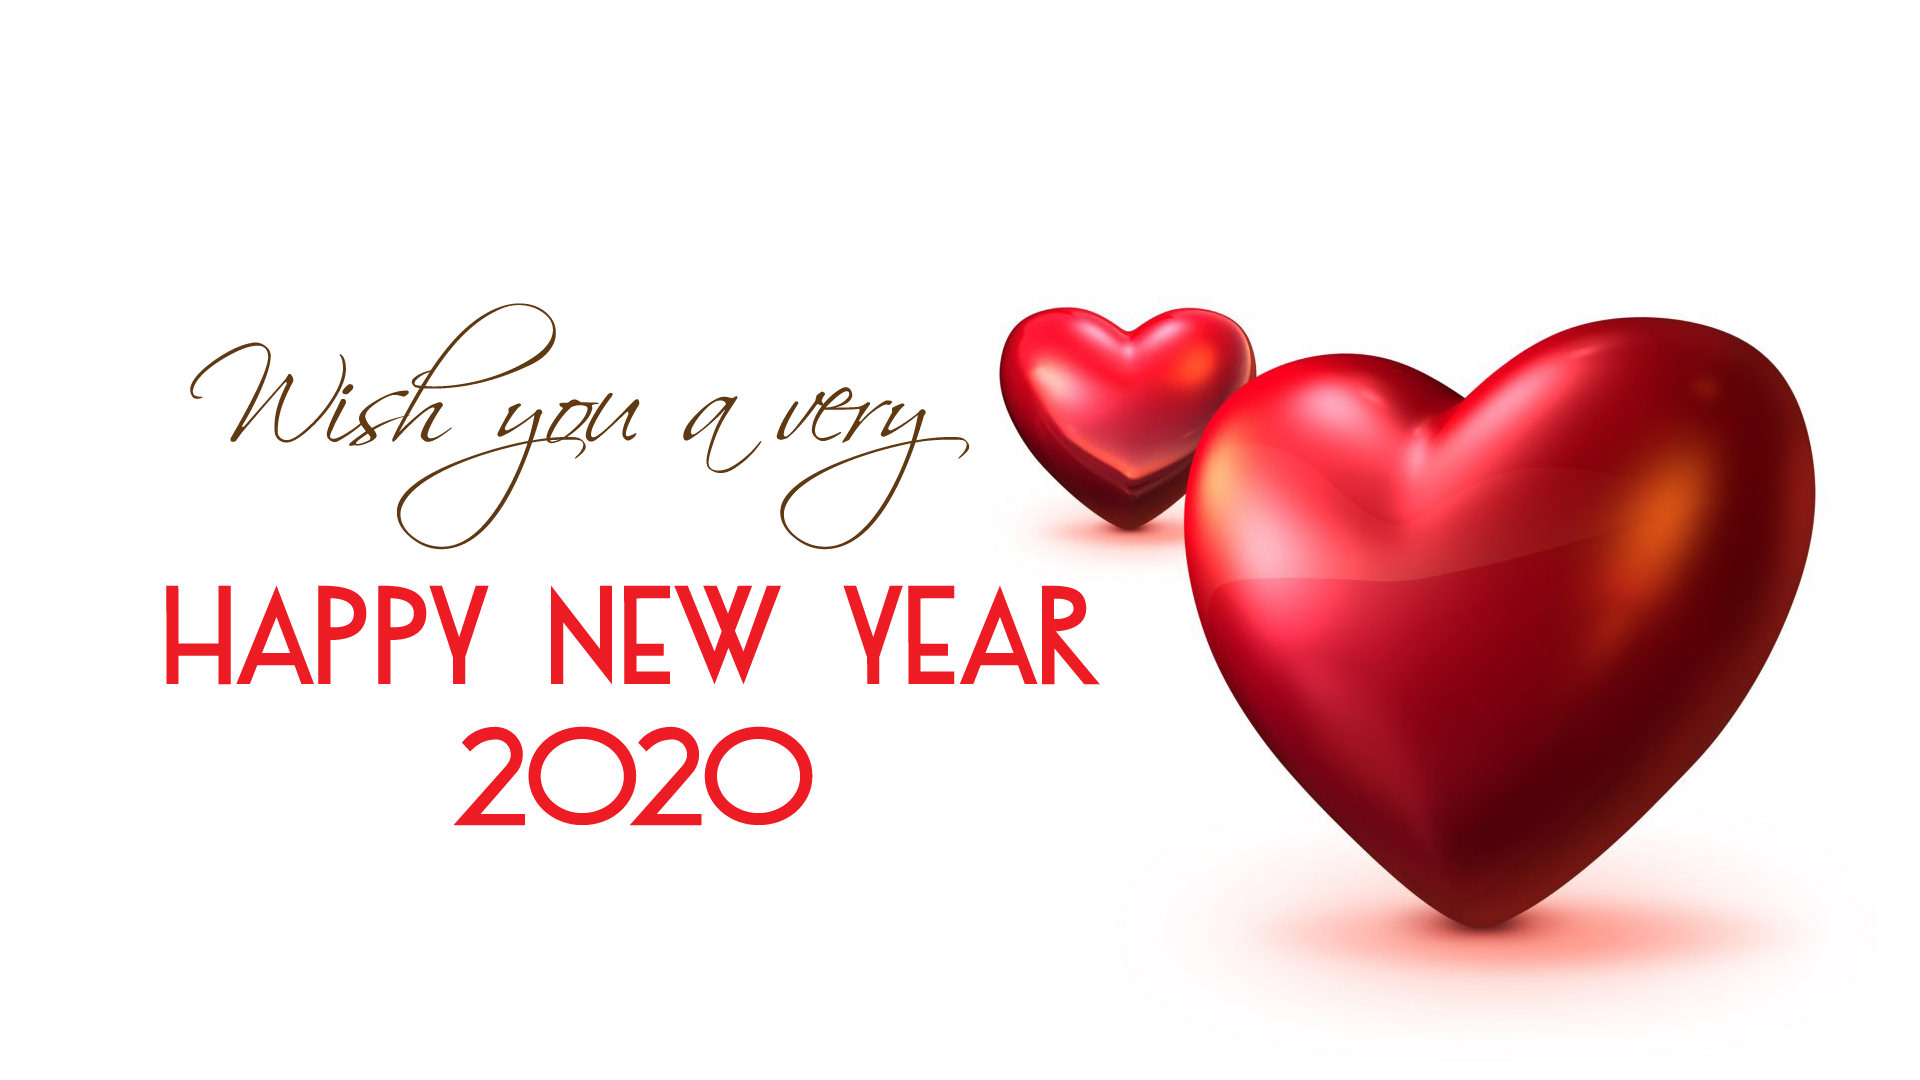 Wish You A Very Happy New Year 2020 Love Heart Wallpaper - Love Happy New Year 2020 , HD Wallpaper & Backgrounds